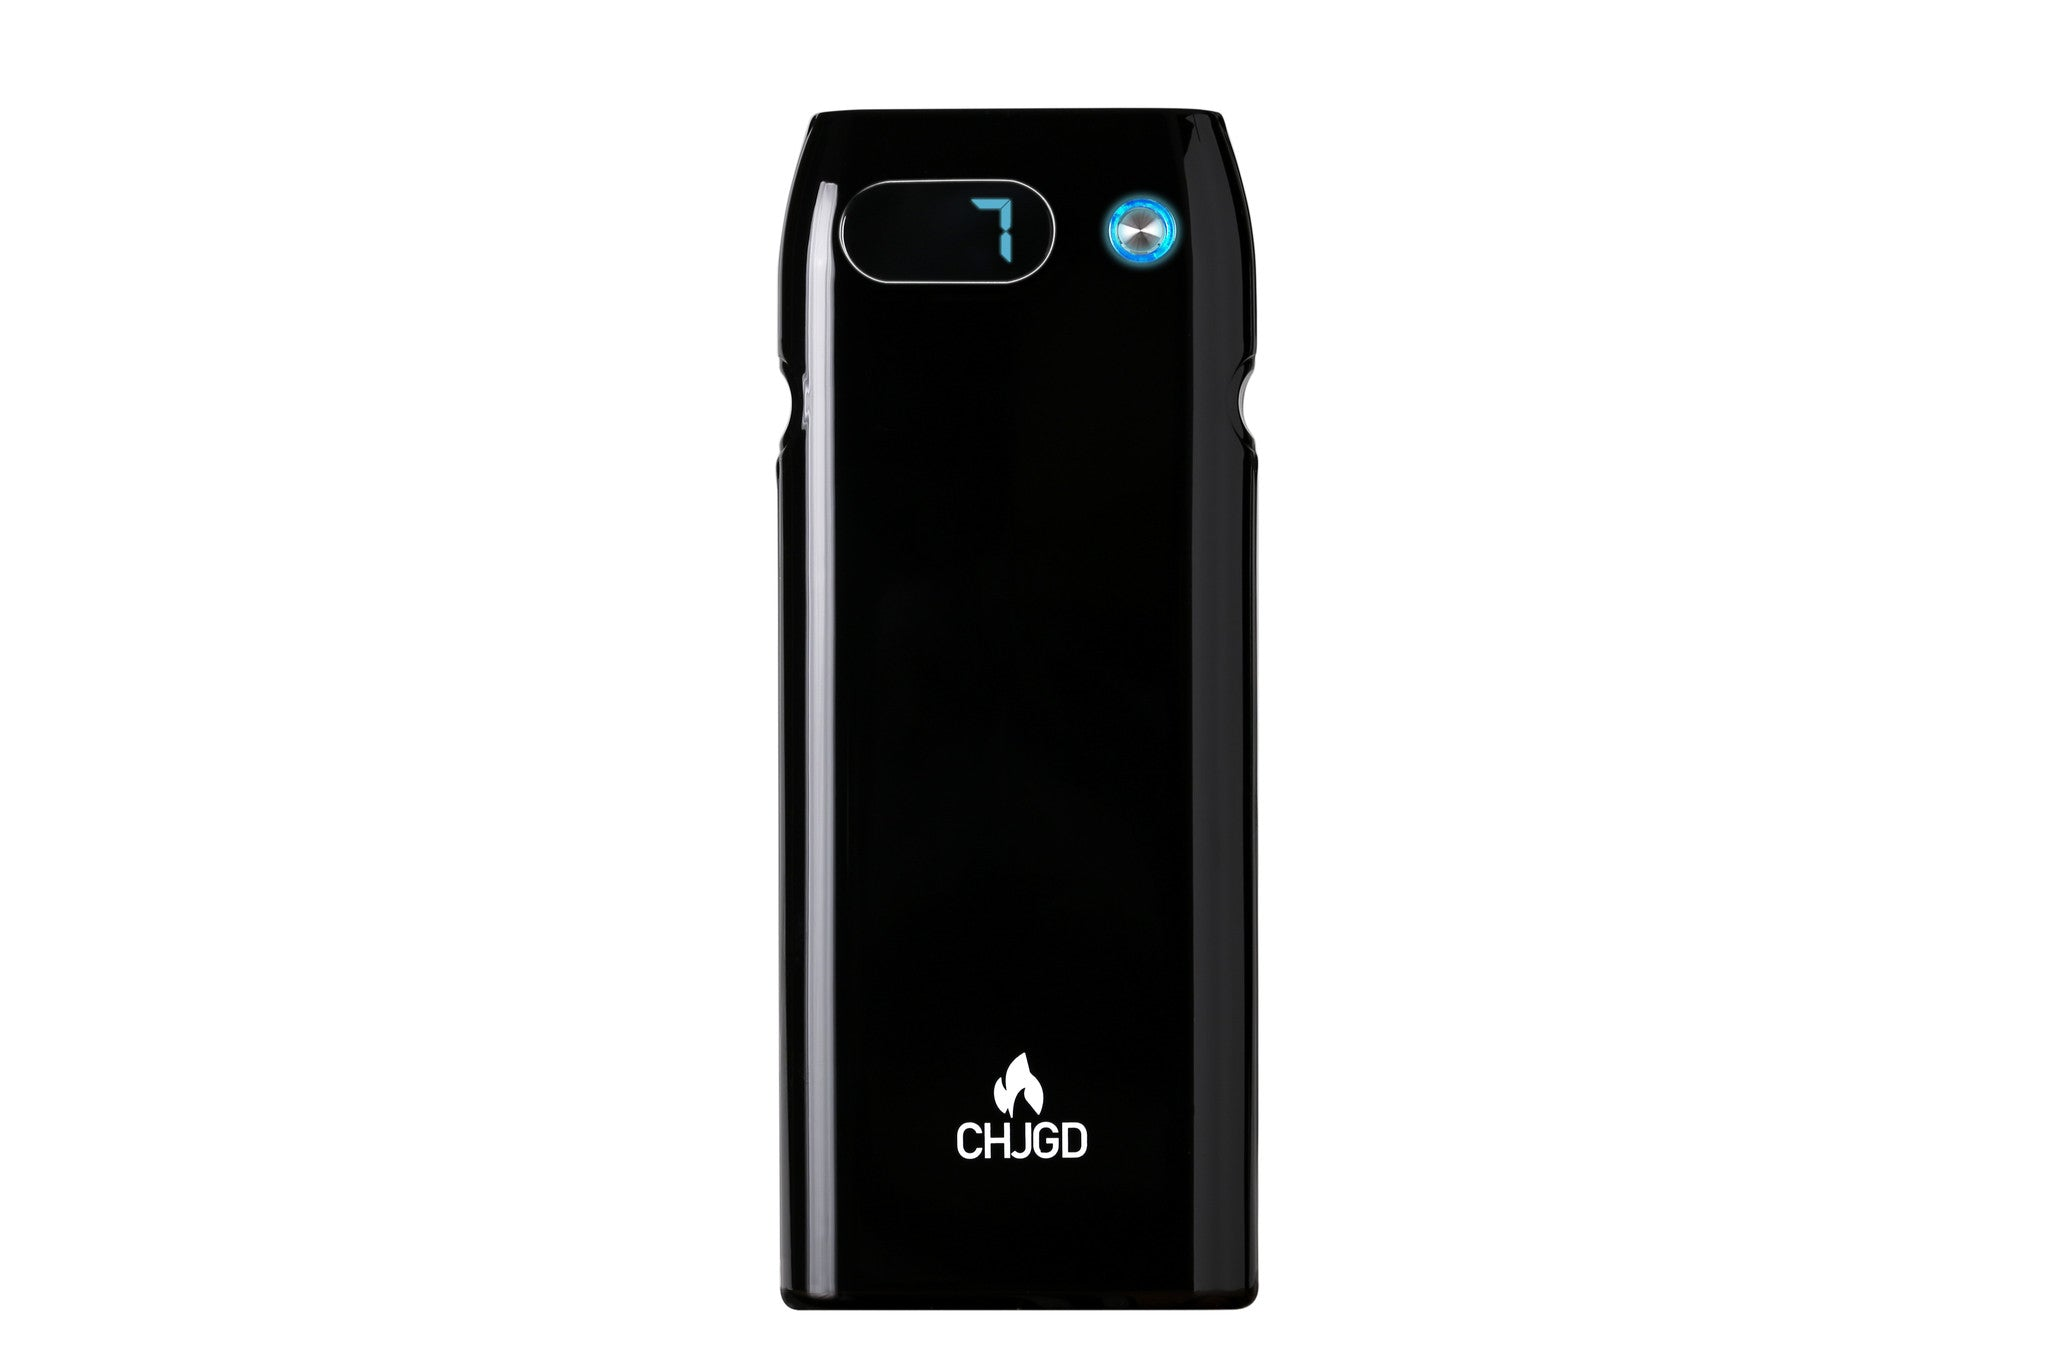 CHJGD® Magnum Opus- Qualcomm Quick Charge 3.0 enabled 21,000 mAh Power Bank with LCD display (Black) - CHARGEDPOWER.COM